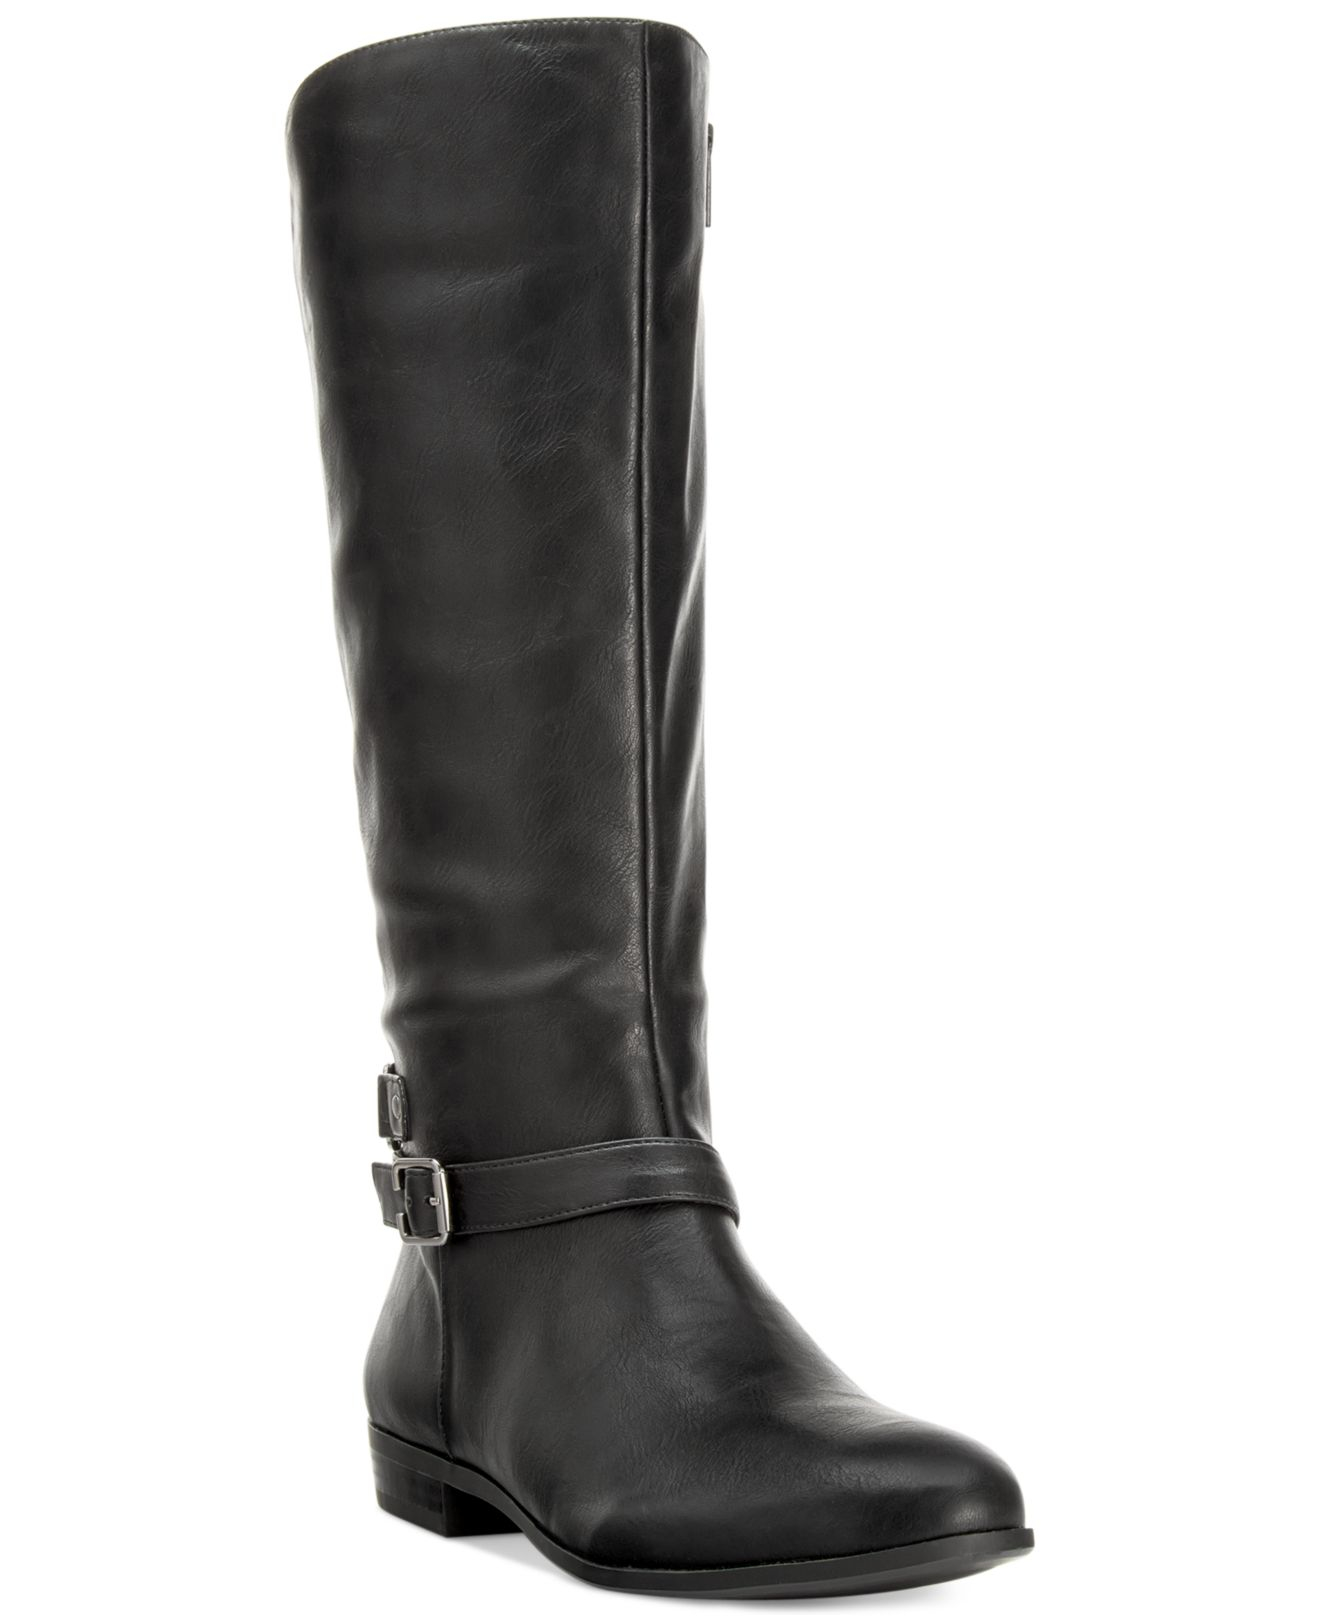 style co style co faee boots only at macy s in